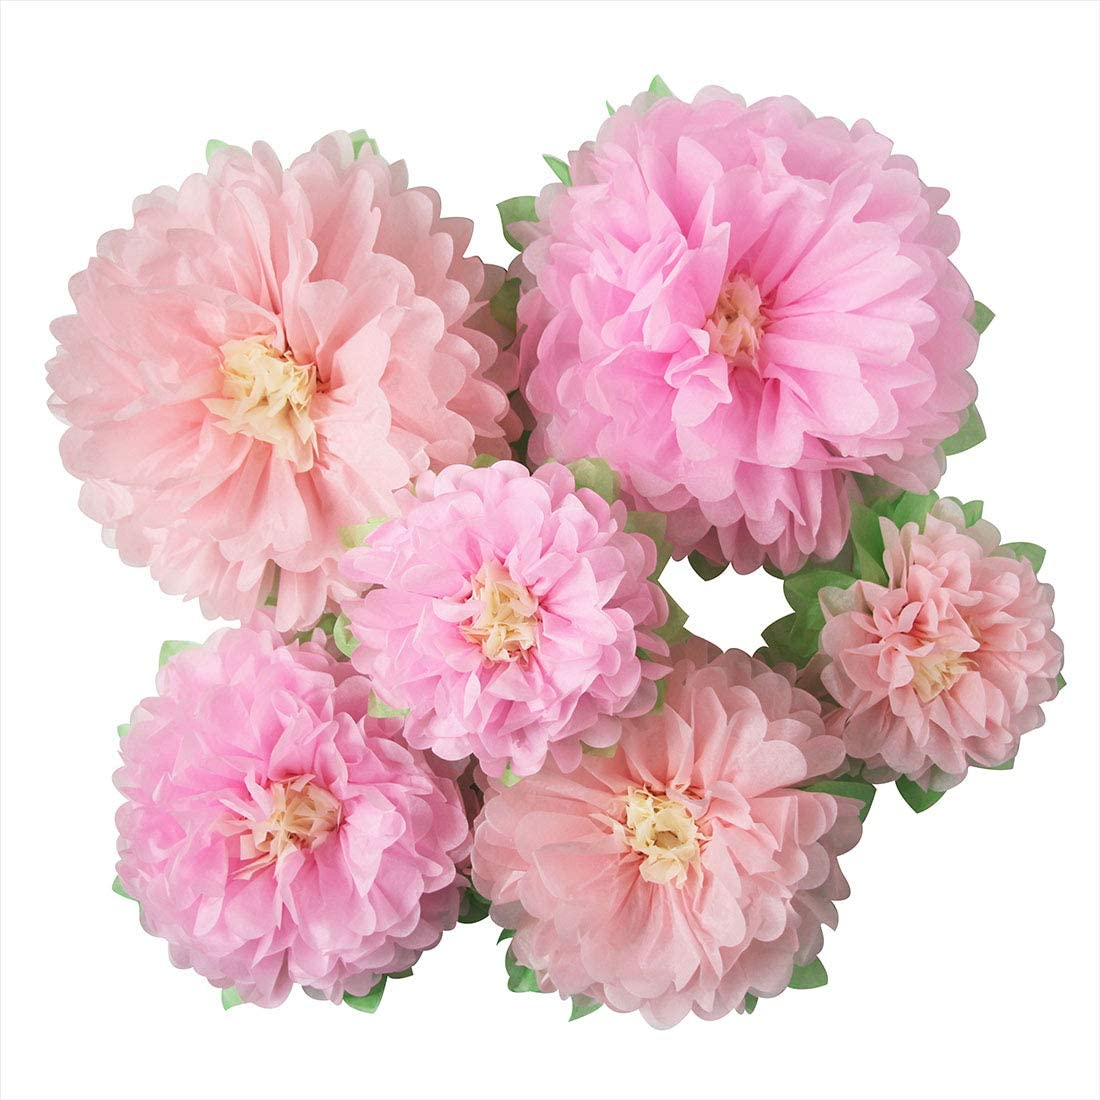 Mybbshower Pinks Flowers Decoration (11''-7'' Assorted) 6 pcs Artificial Tissue Paper Peony Nursery Wall Bridal Shower Centerpiece Baby Girl Birthday Tea Party: Toys & Games